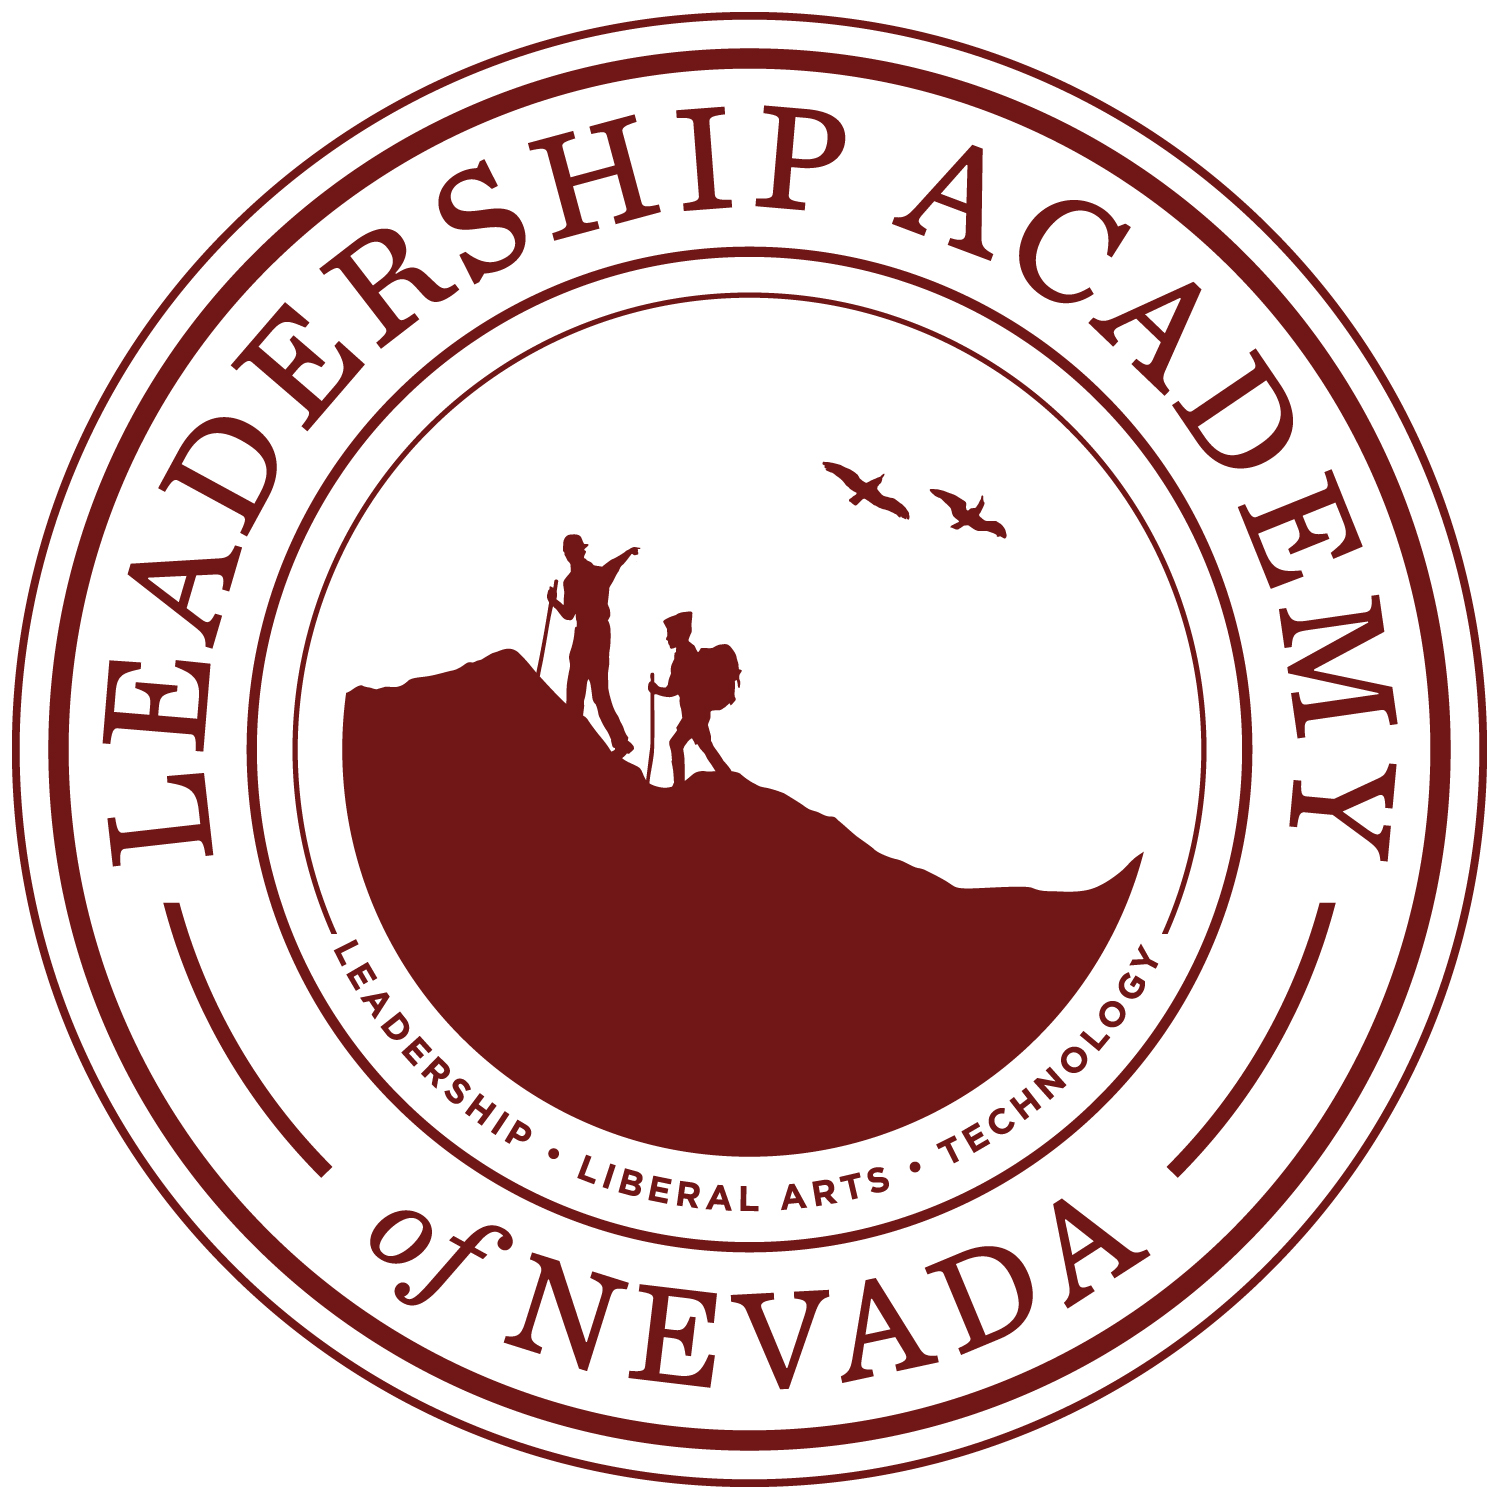 Leadership Academy of Nevada